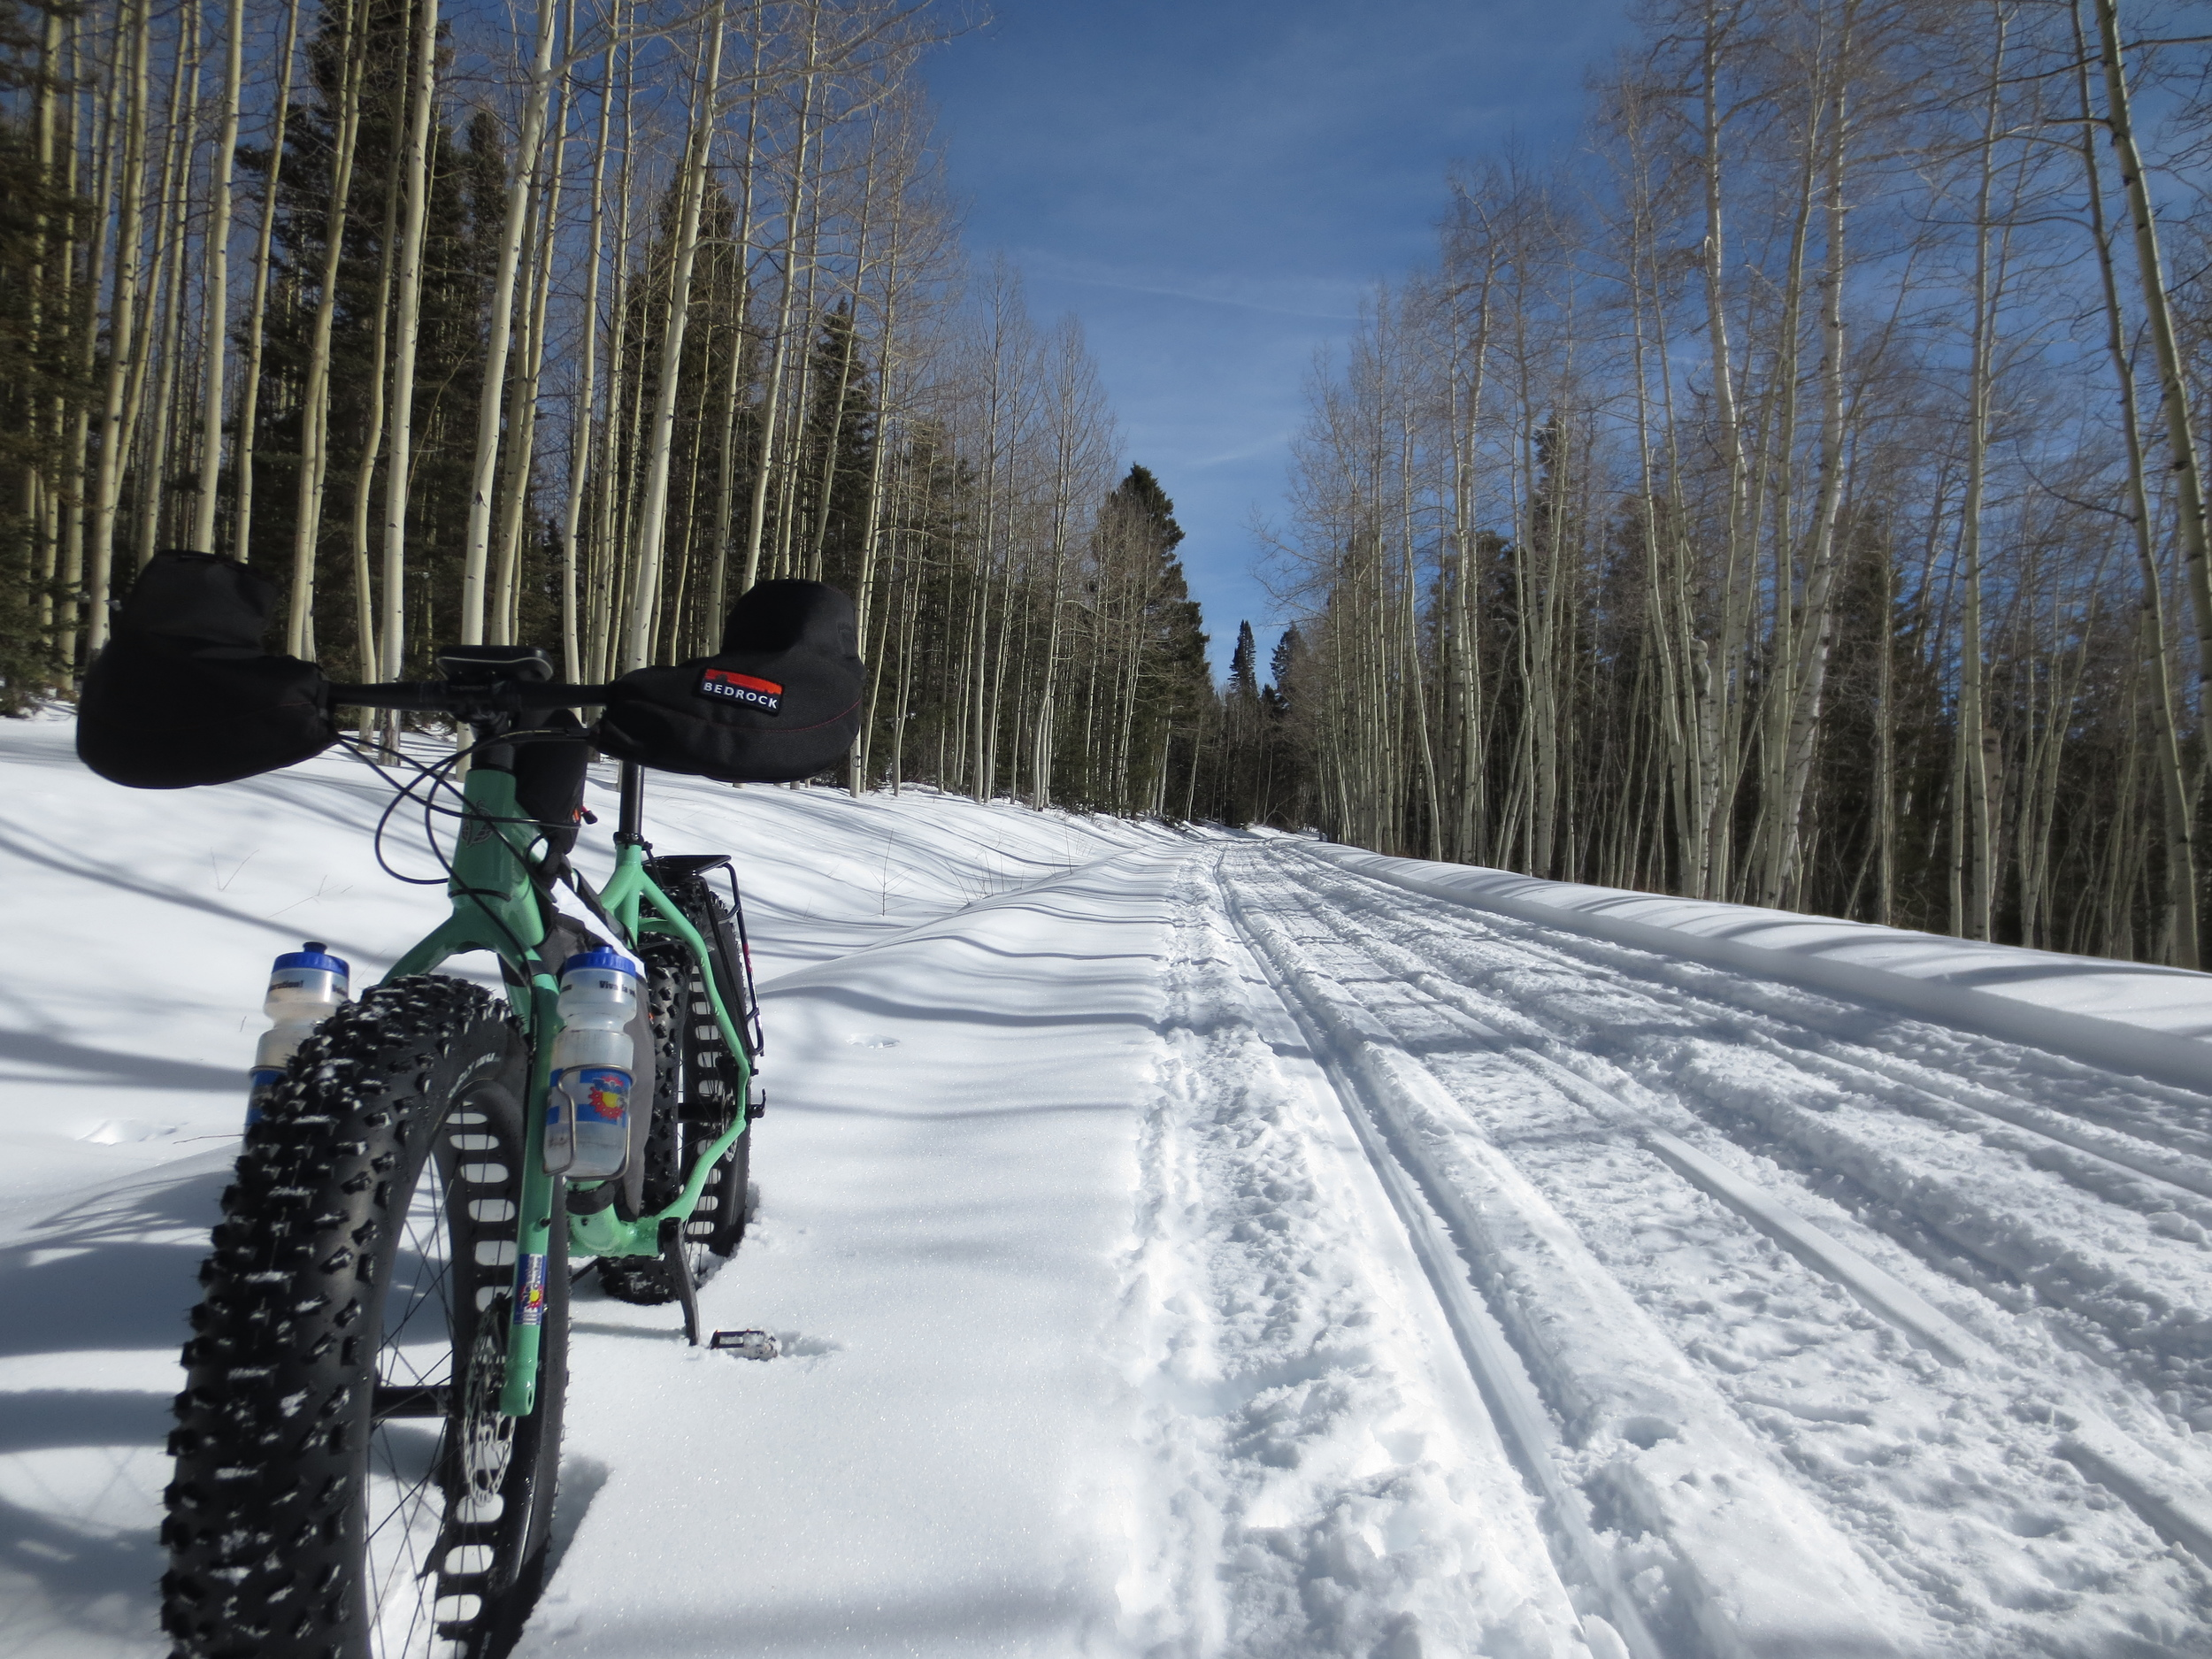 Blue skies and fast trails... awesome.